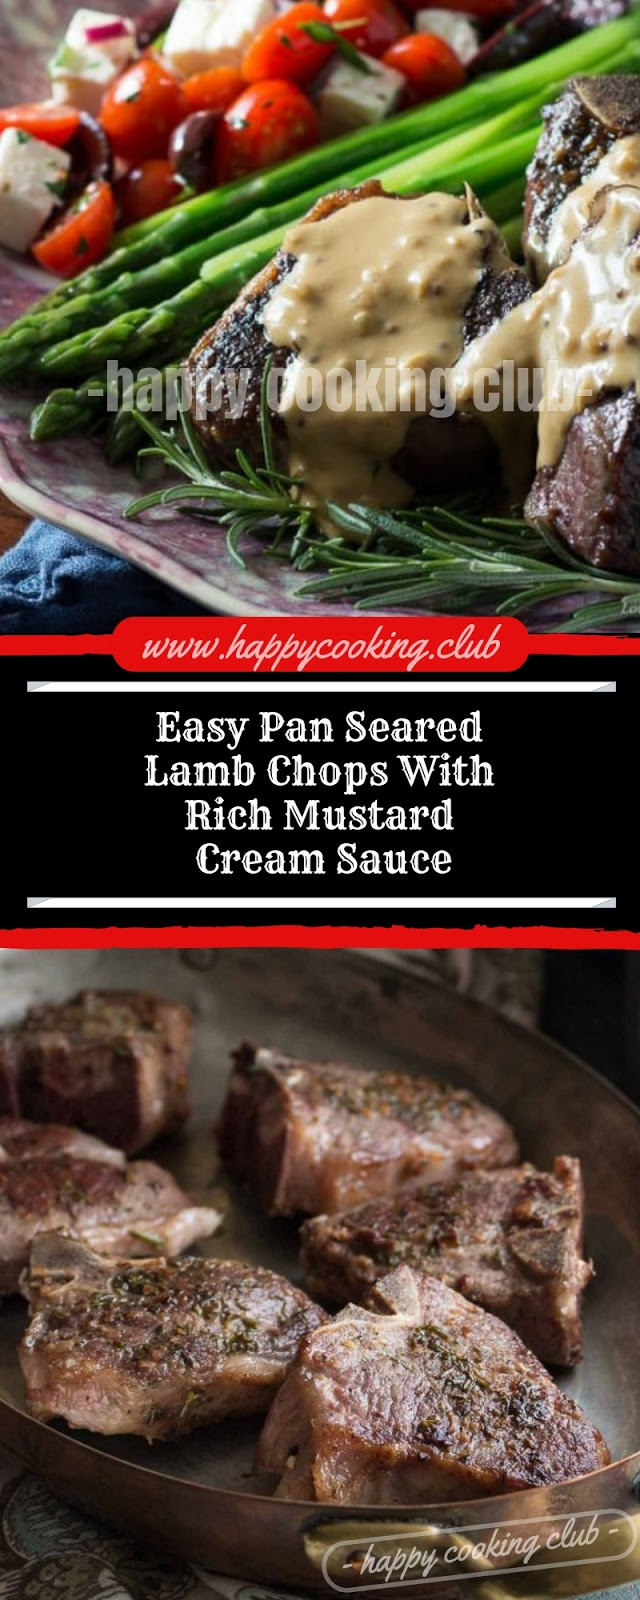 Easy Pan Seared Lamb Chops With Rich Mustard Cream Sauce